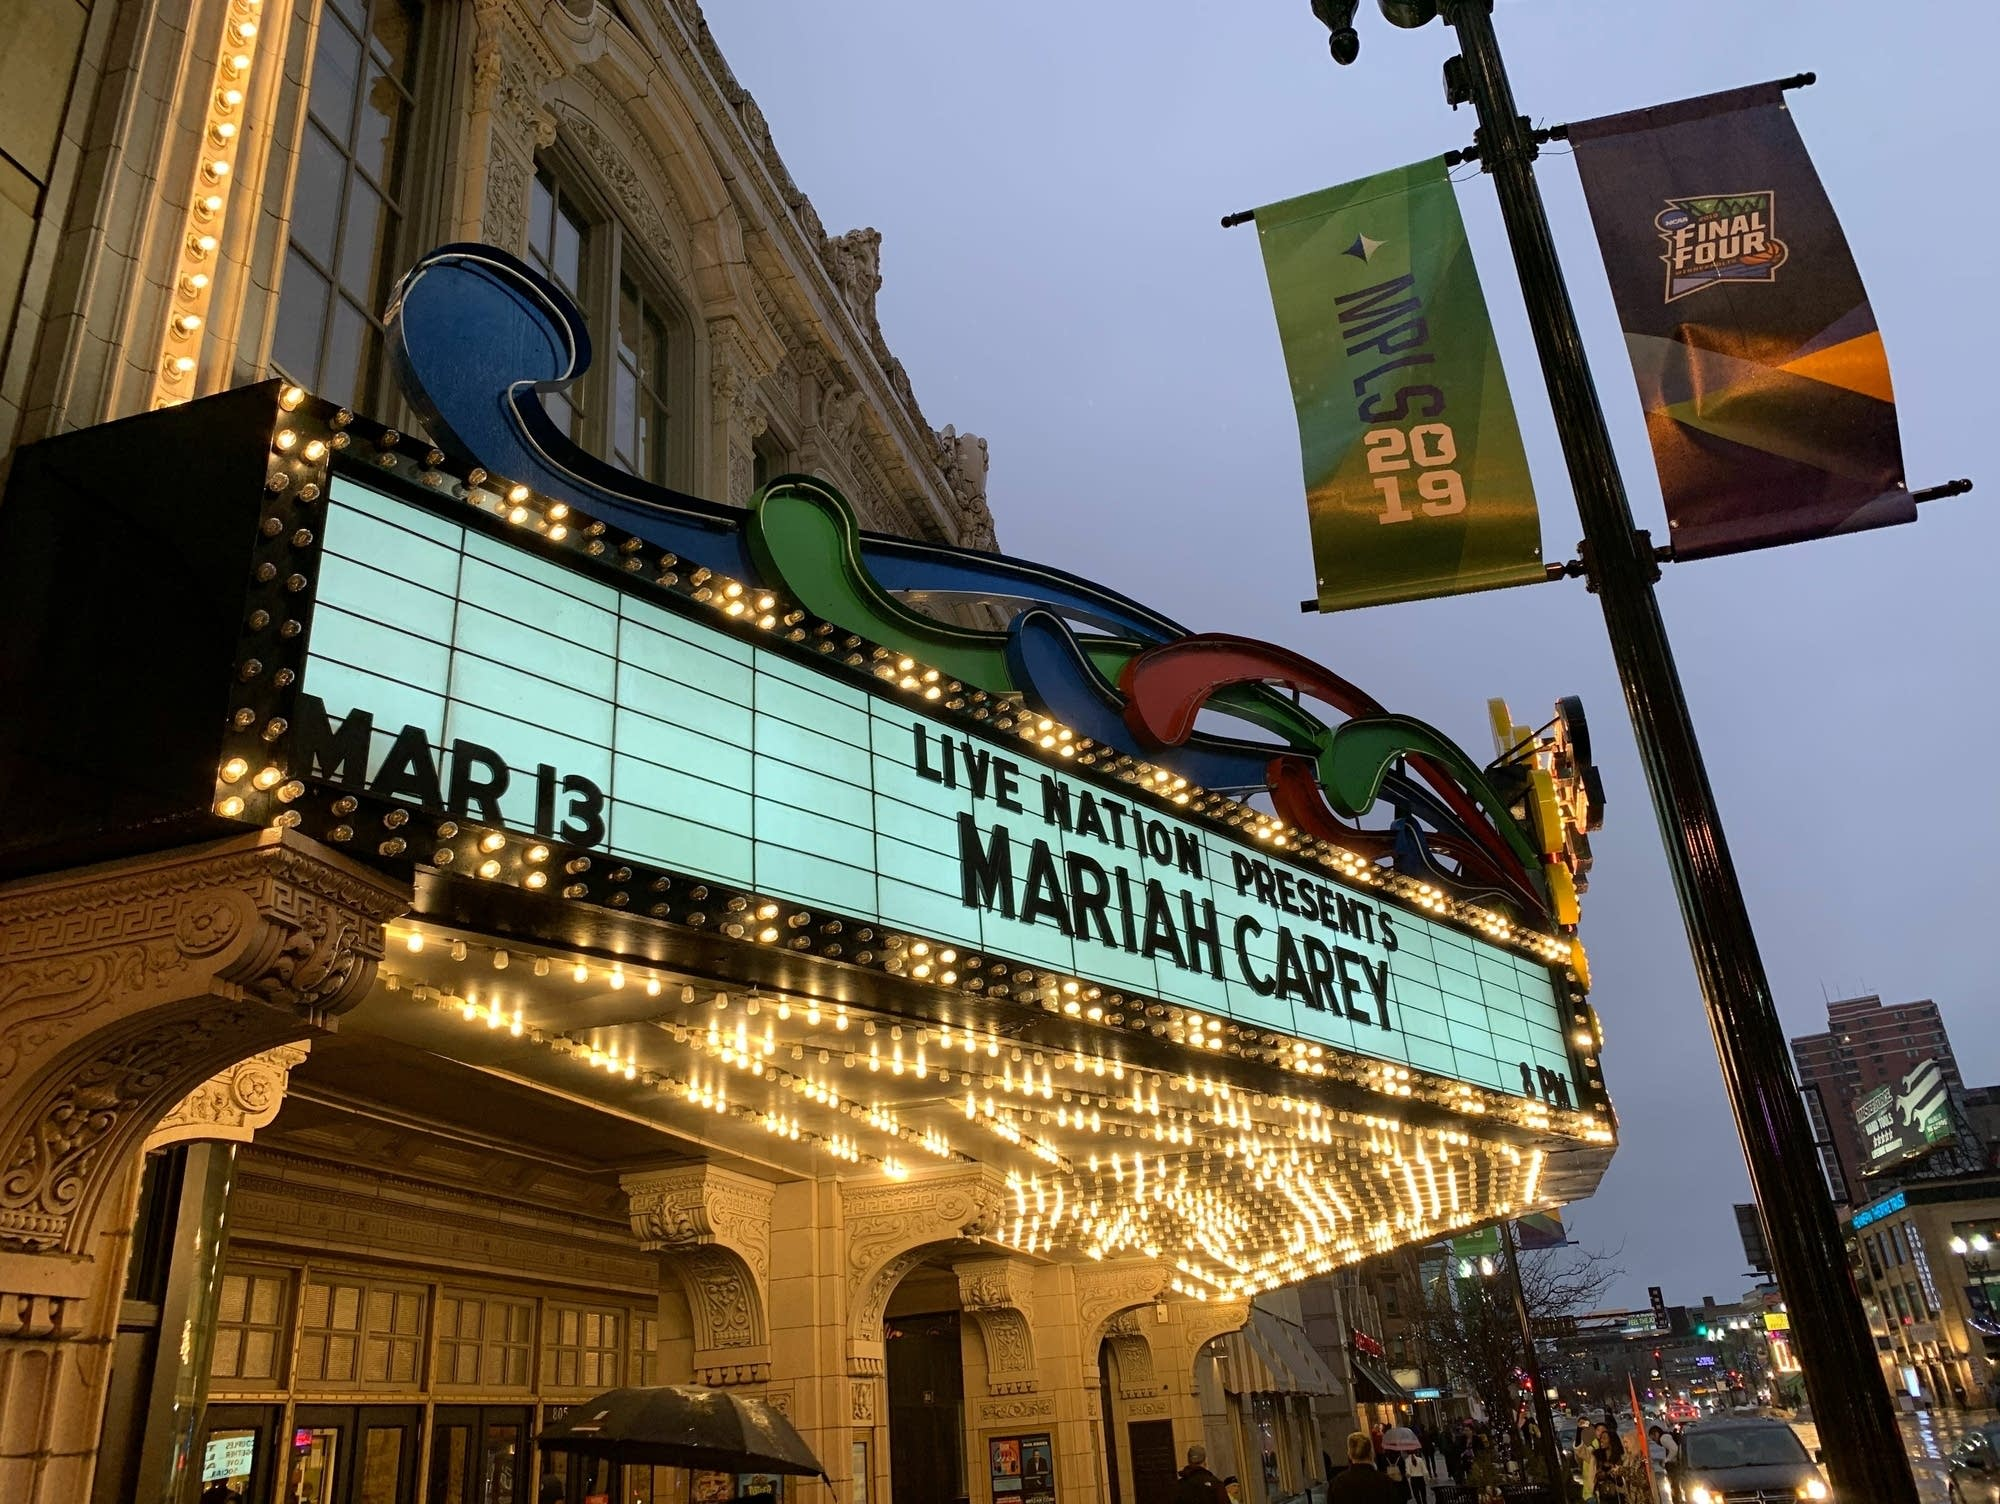 State Theatre marquee advertising Mariah Carey.